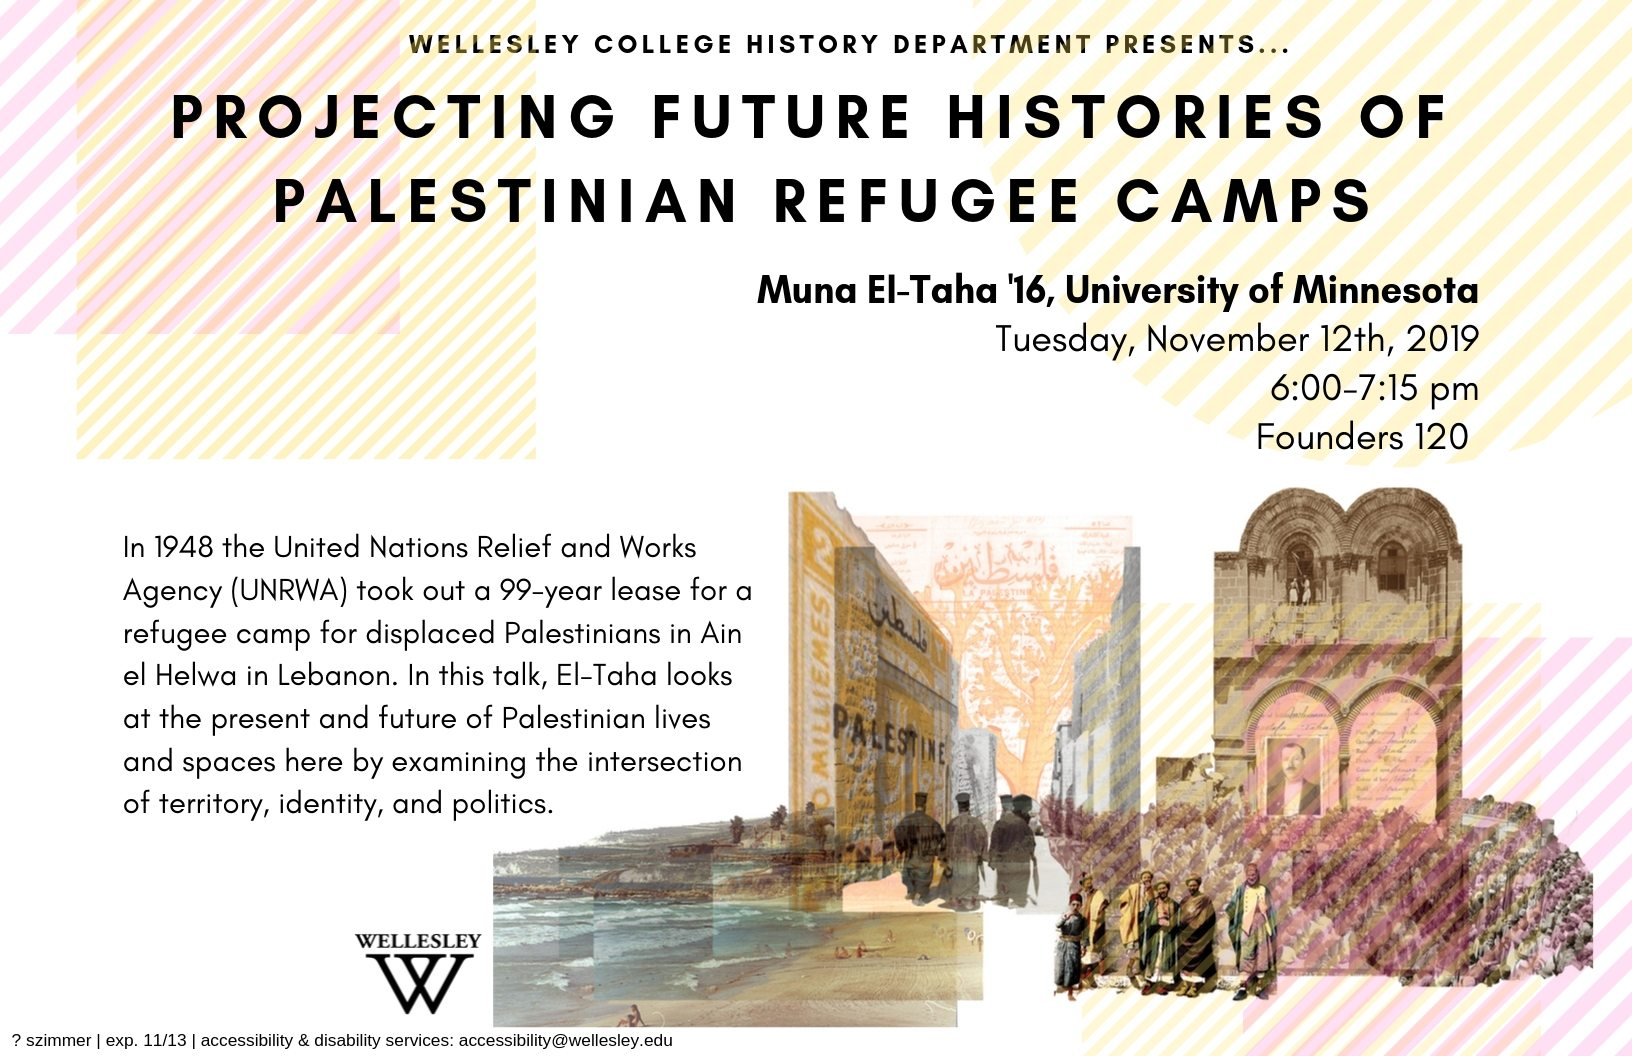 Projecting Future Histories of Palestinian Refugee Camps